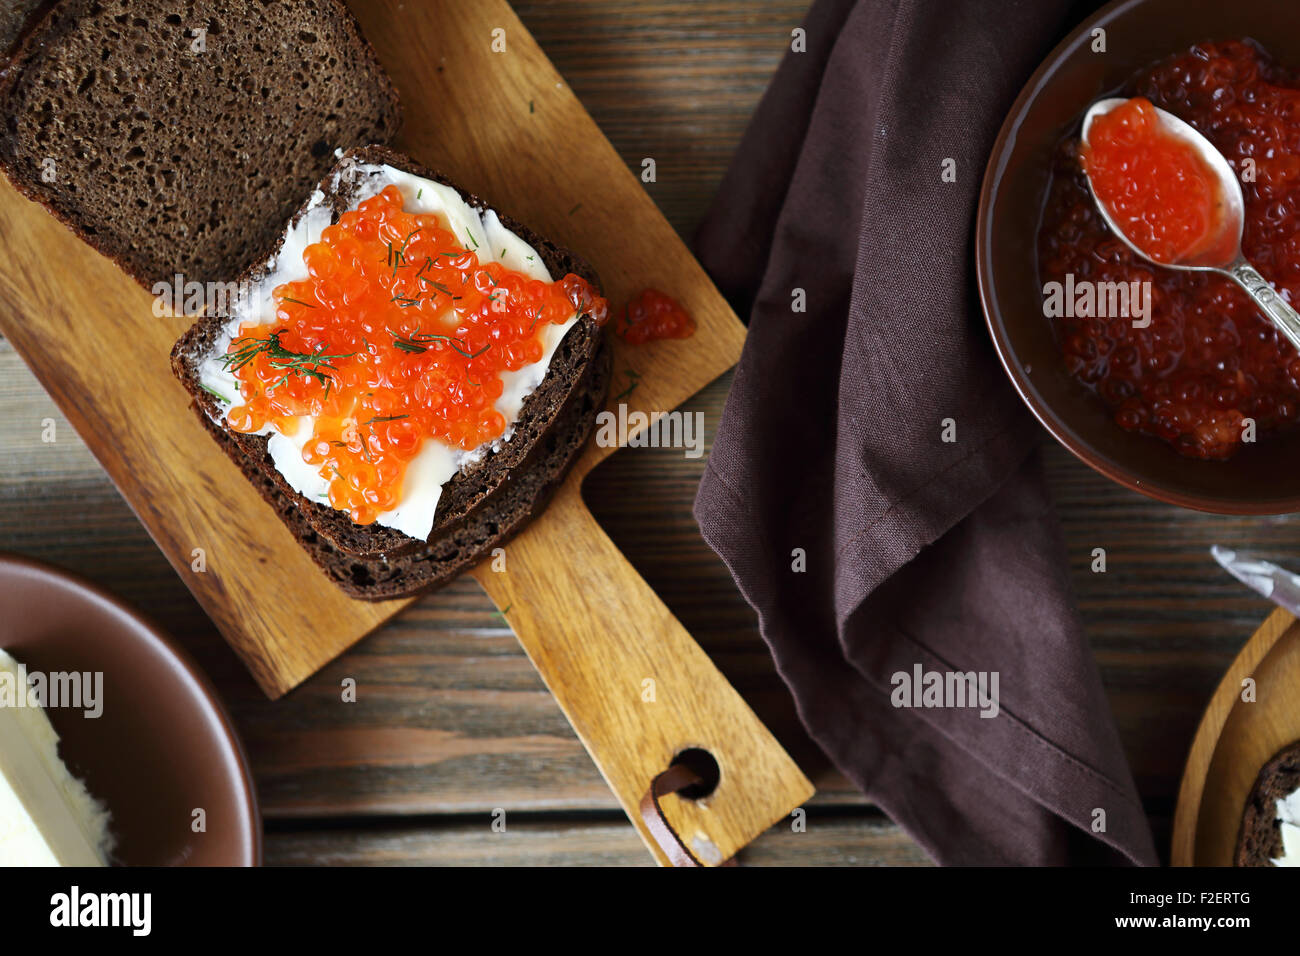 Sandwich with caviar on the board, food - Stock Image